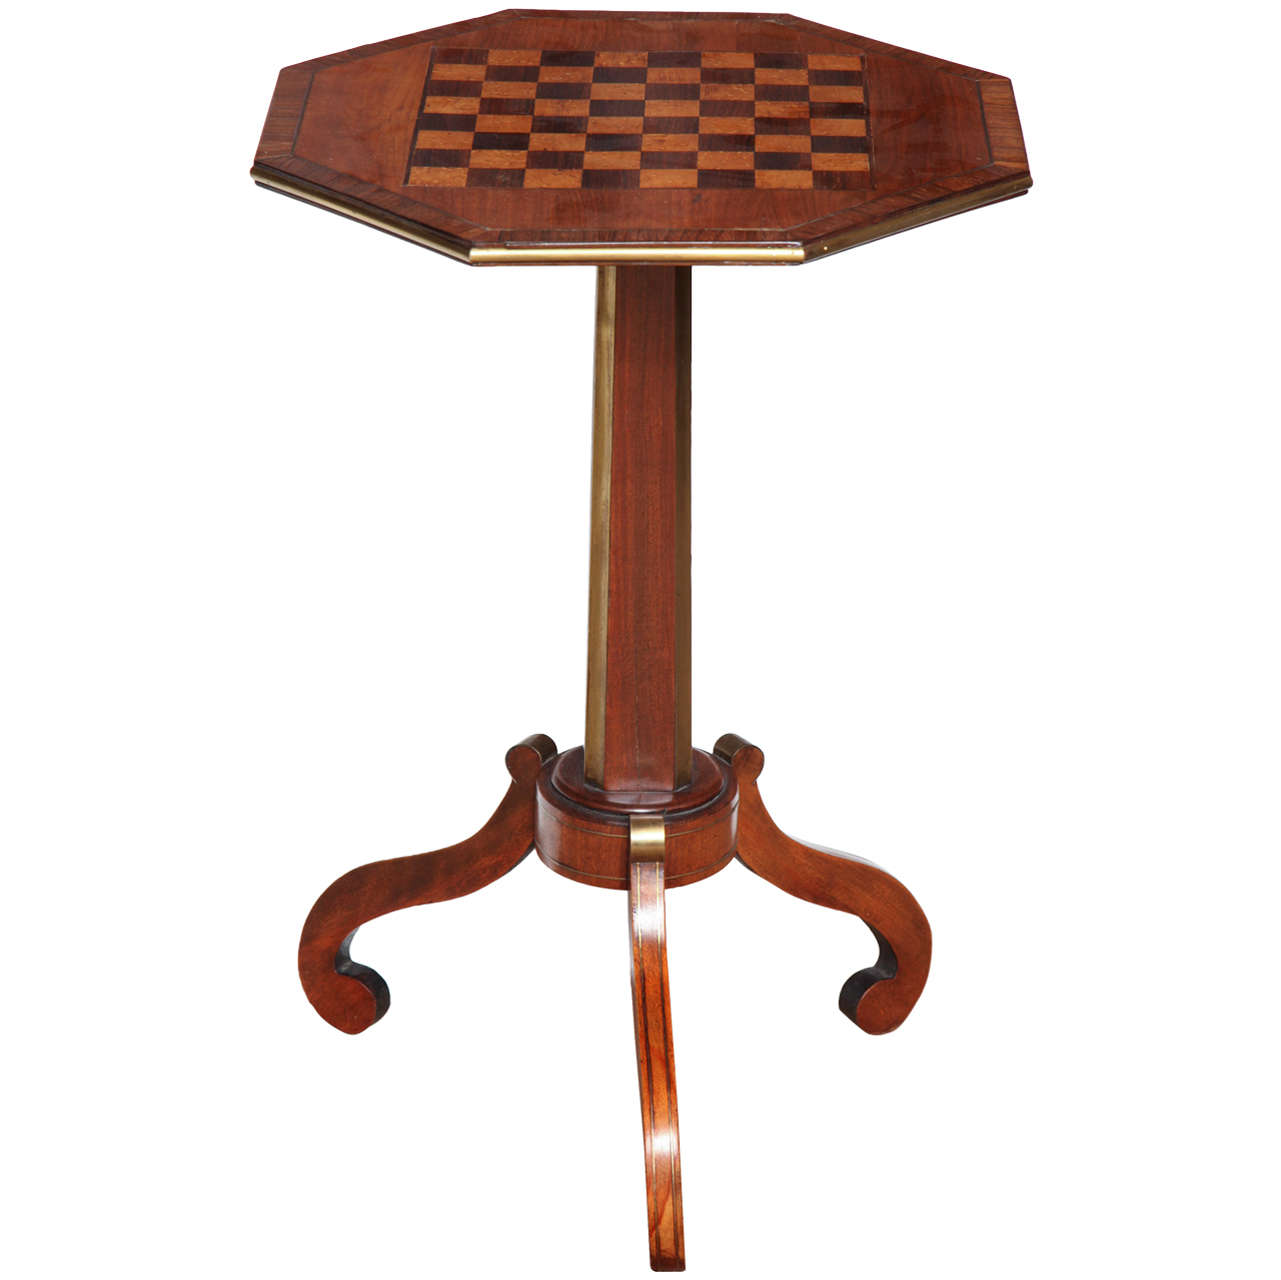 19th Century English,Fruitwood and Brass, Checkerboard Top Table